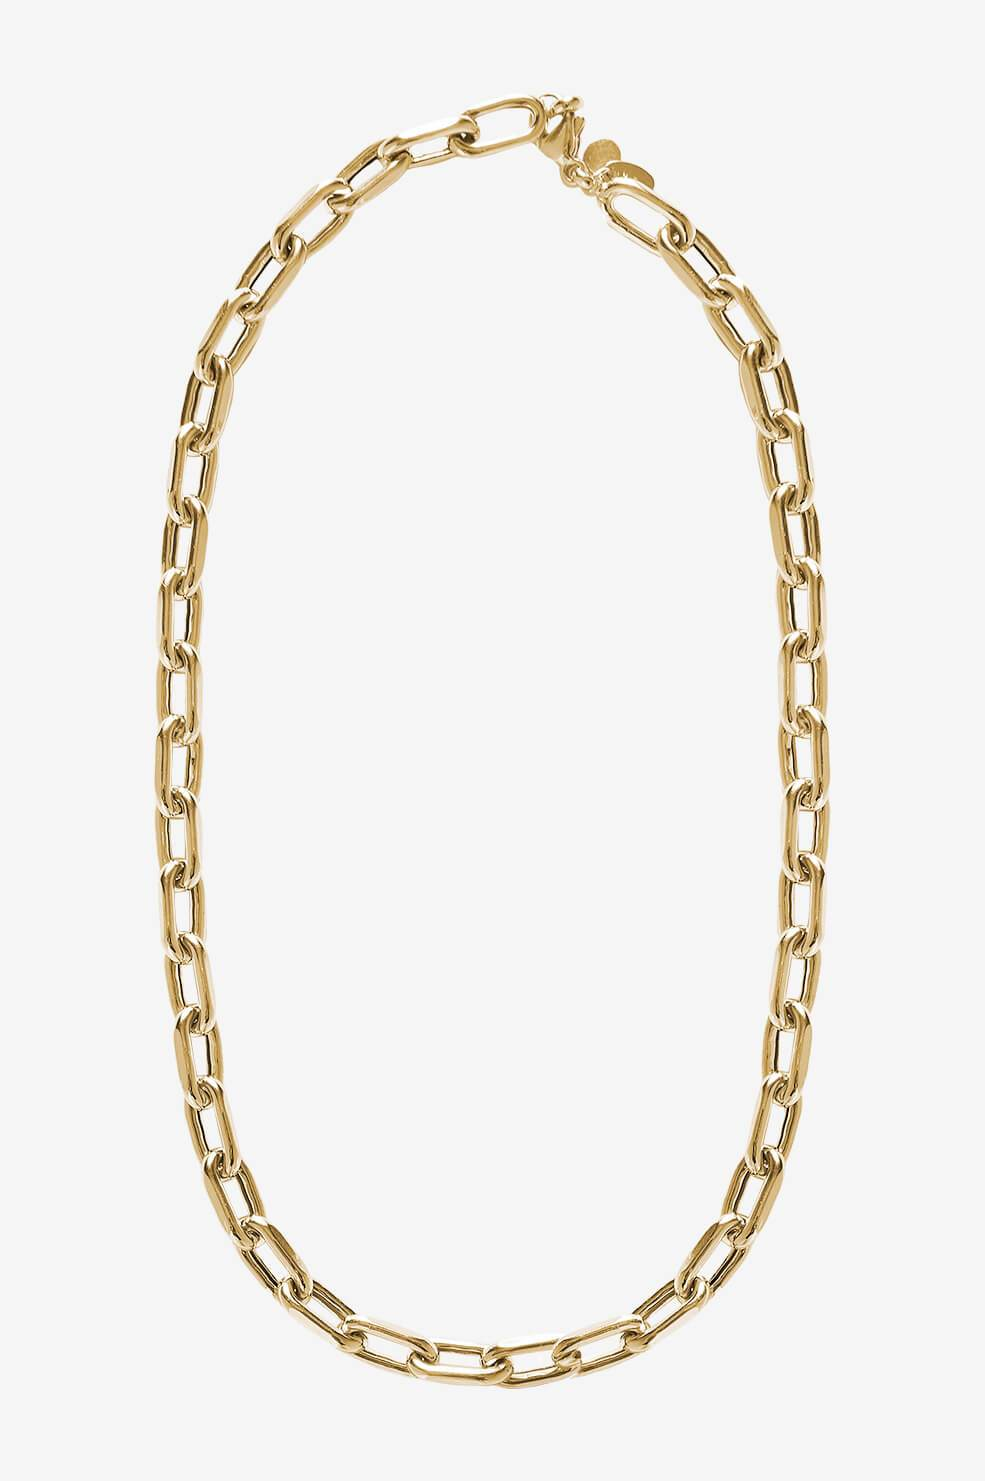 ANINE-BING-DELICATE-CHAIN-NECKLACE-AB90-034-21_838